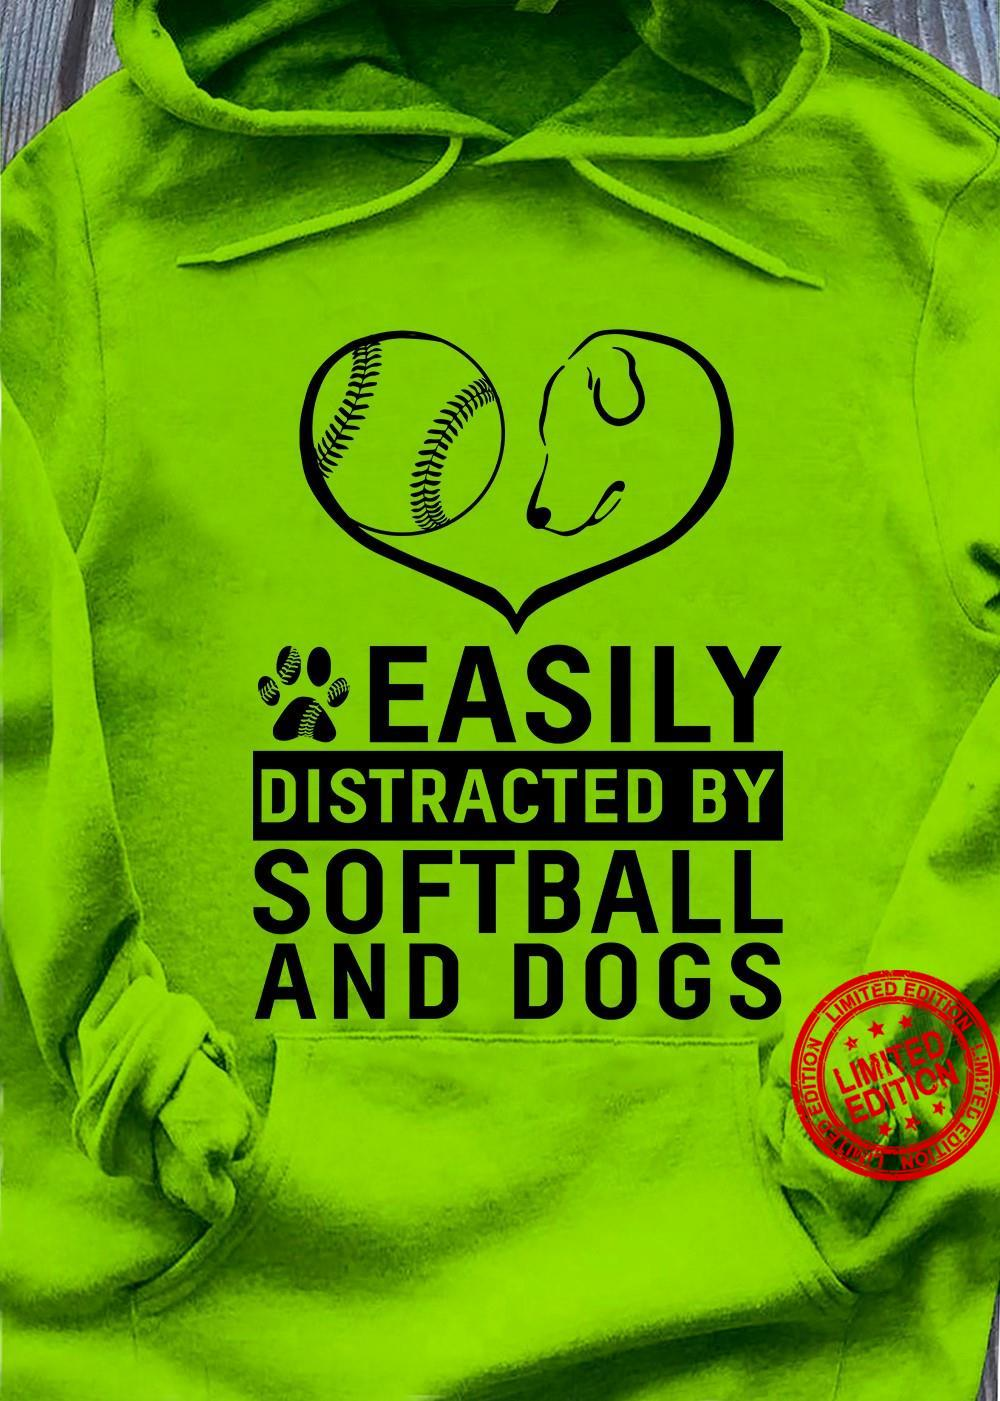 Easily Distracted By Softball And Dogs Shirt